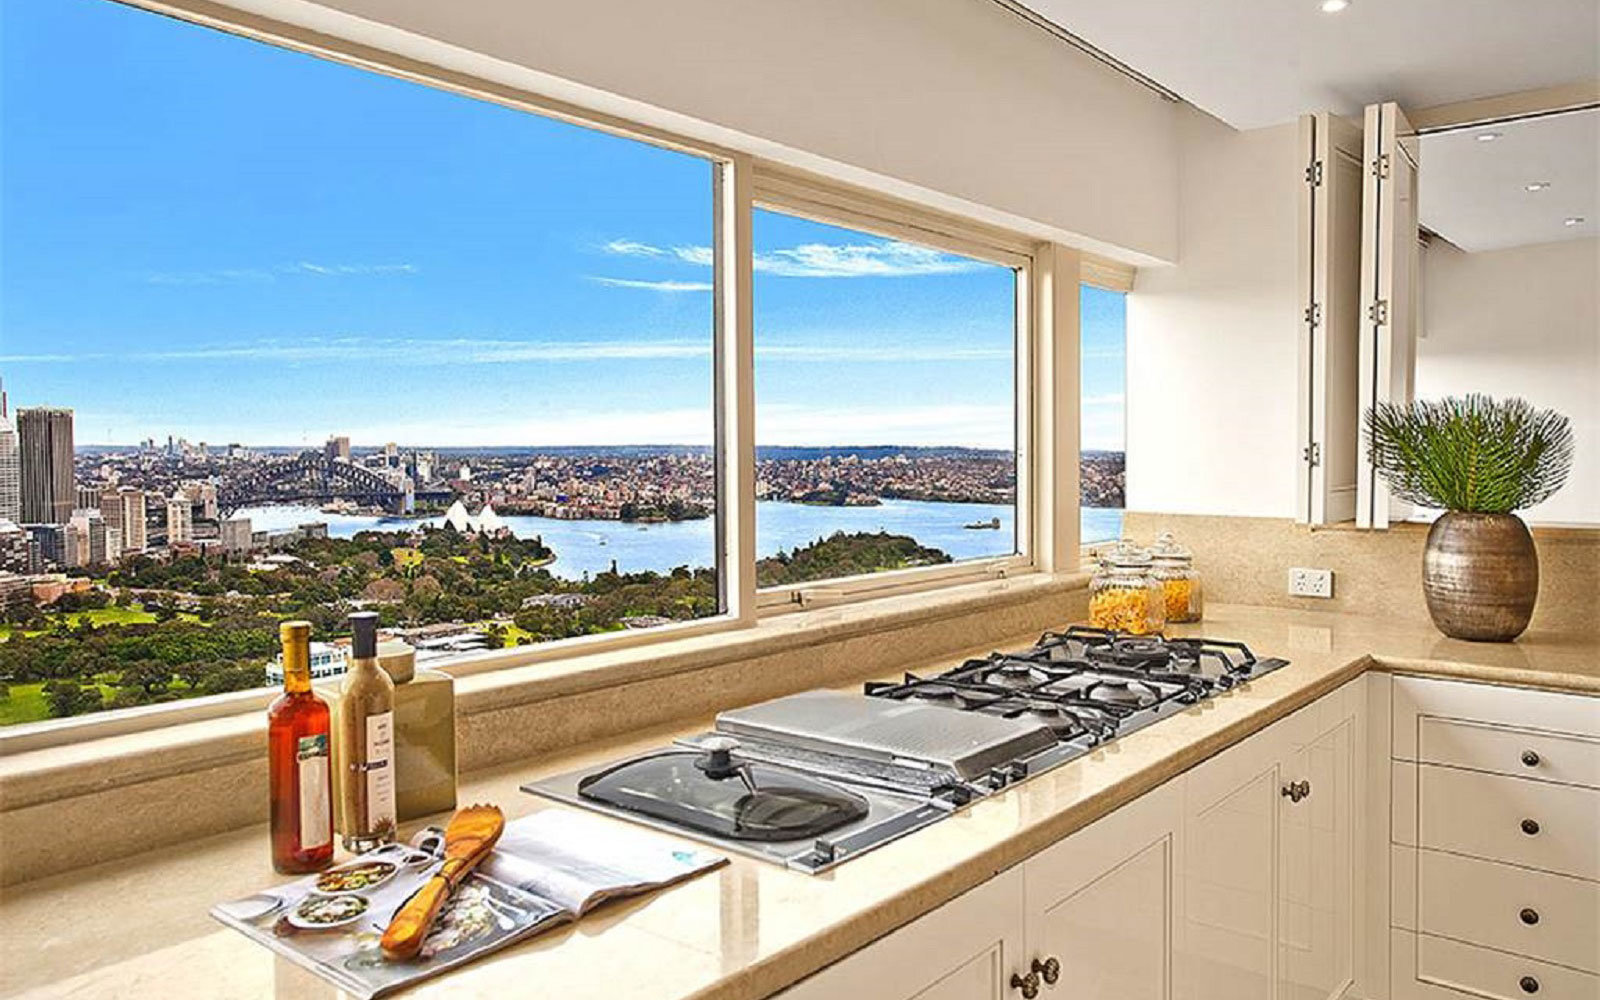 sydney-harbor-view-vacation-rental-TA1016.jpg